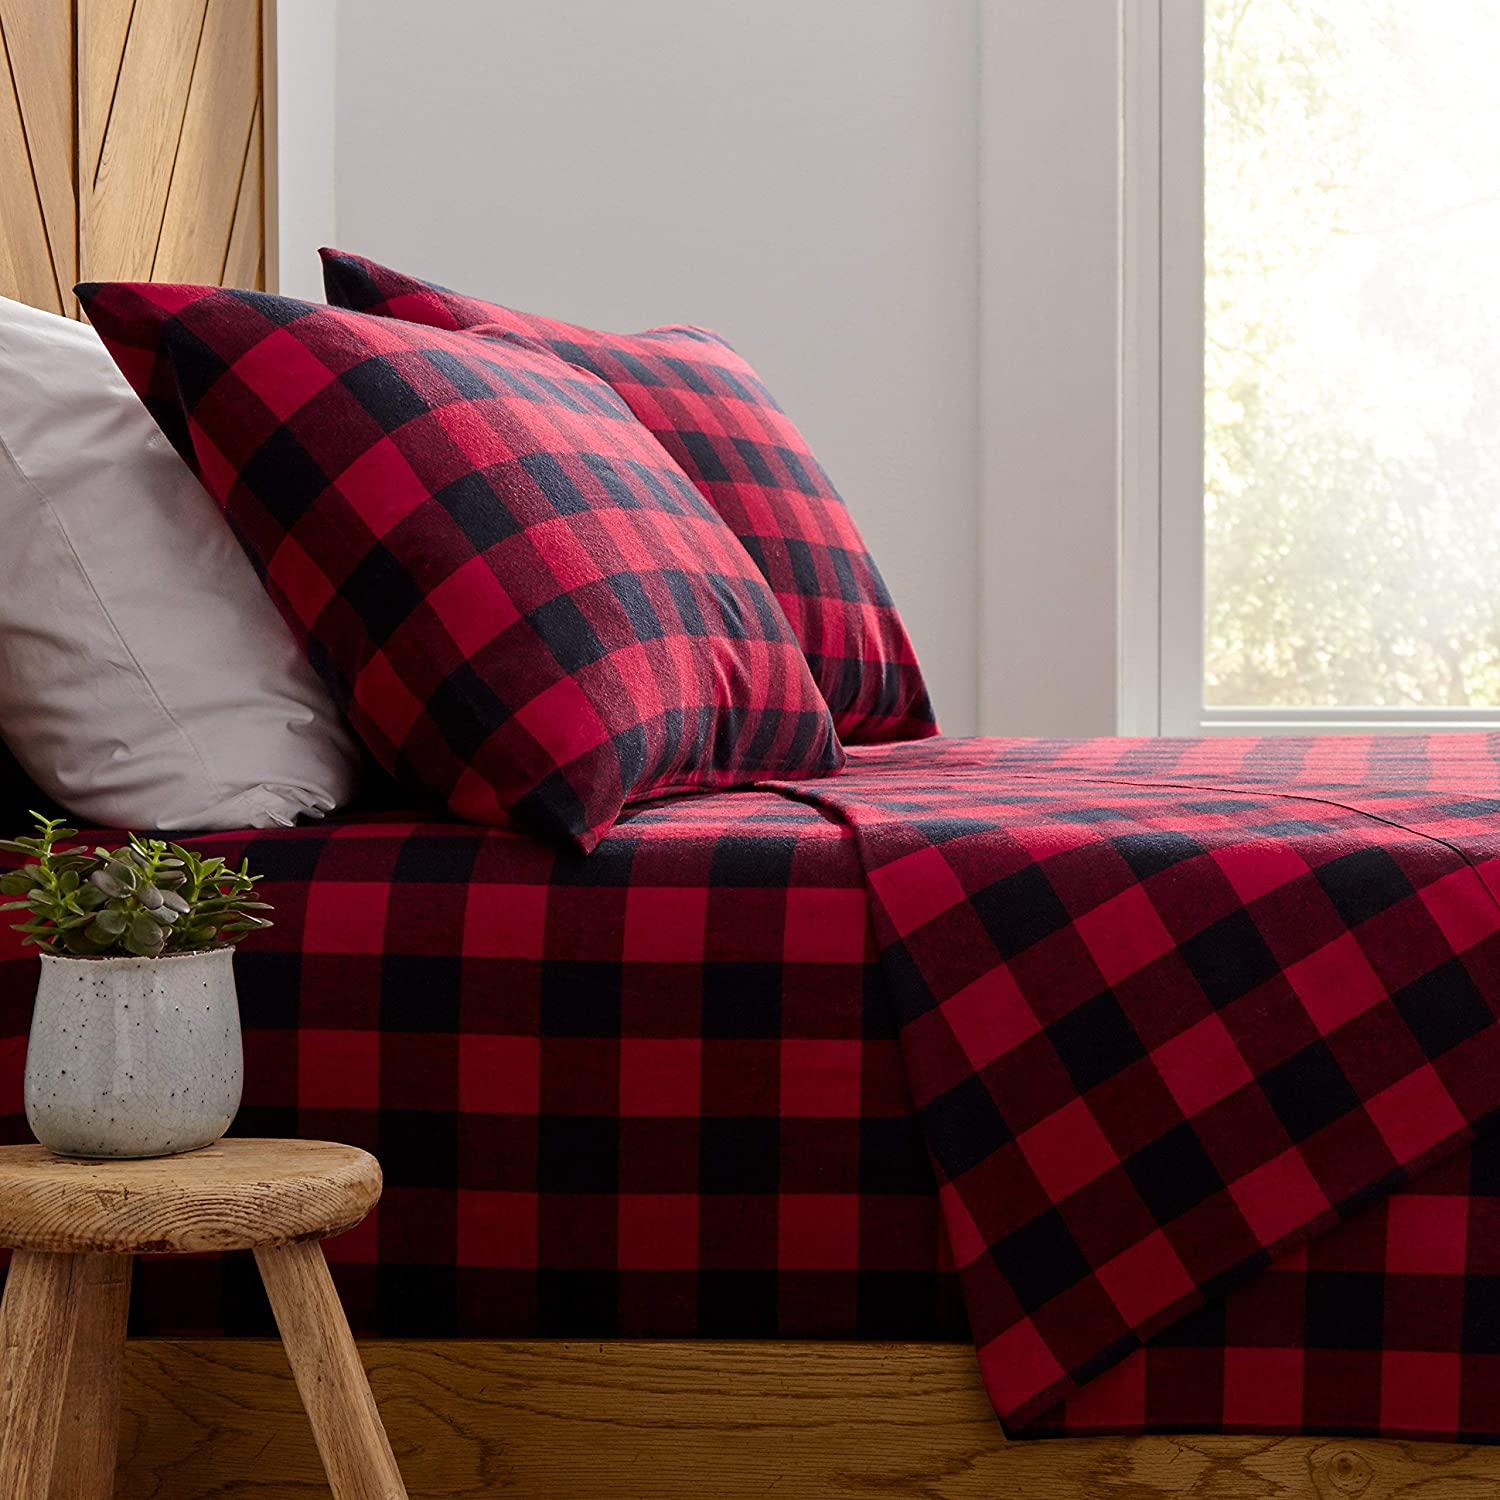 Stone & Beam Rustic Buffalo Check Soft and Breathable Flannel Yarn-Dyed Sheet Set, Queen, Red and Black